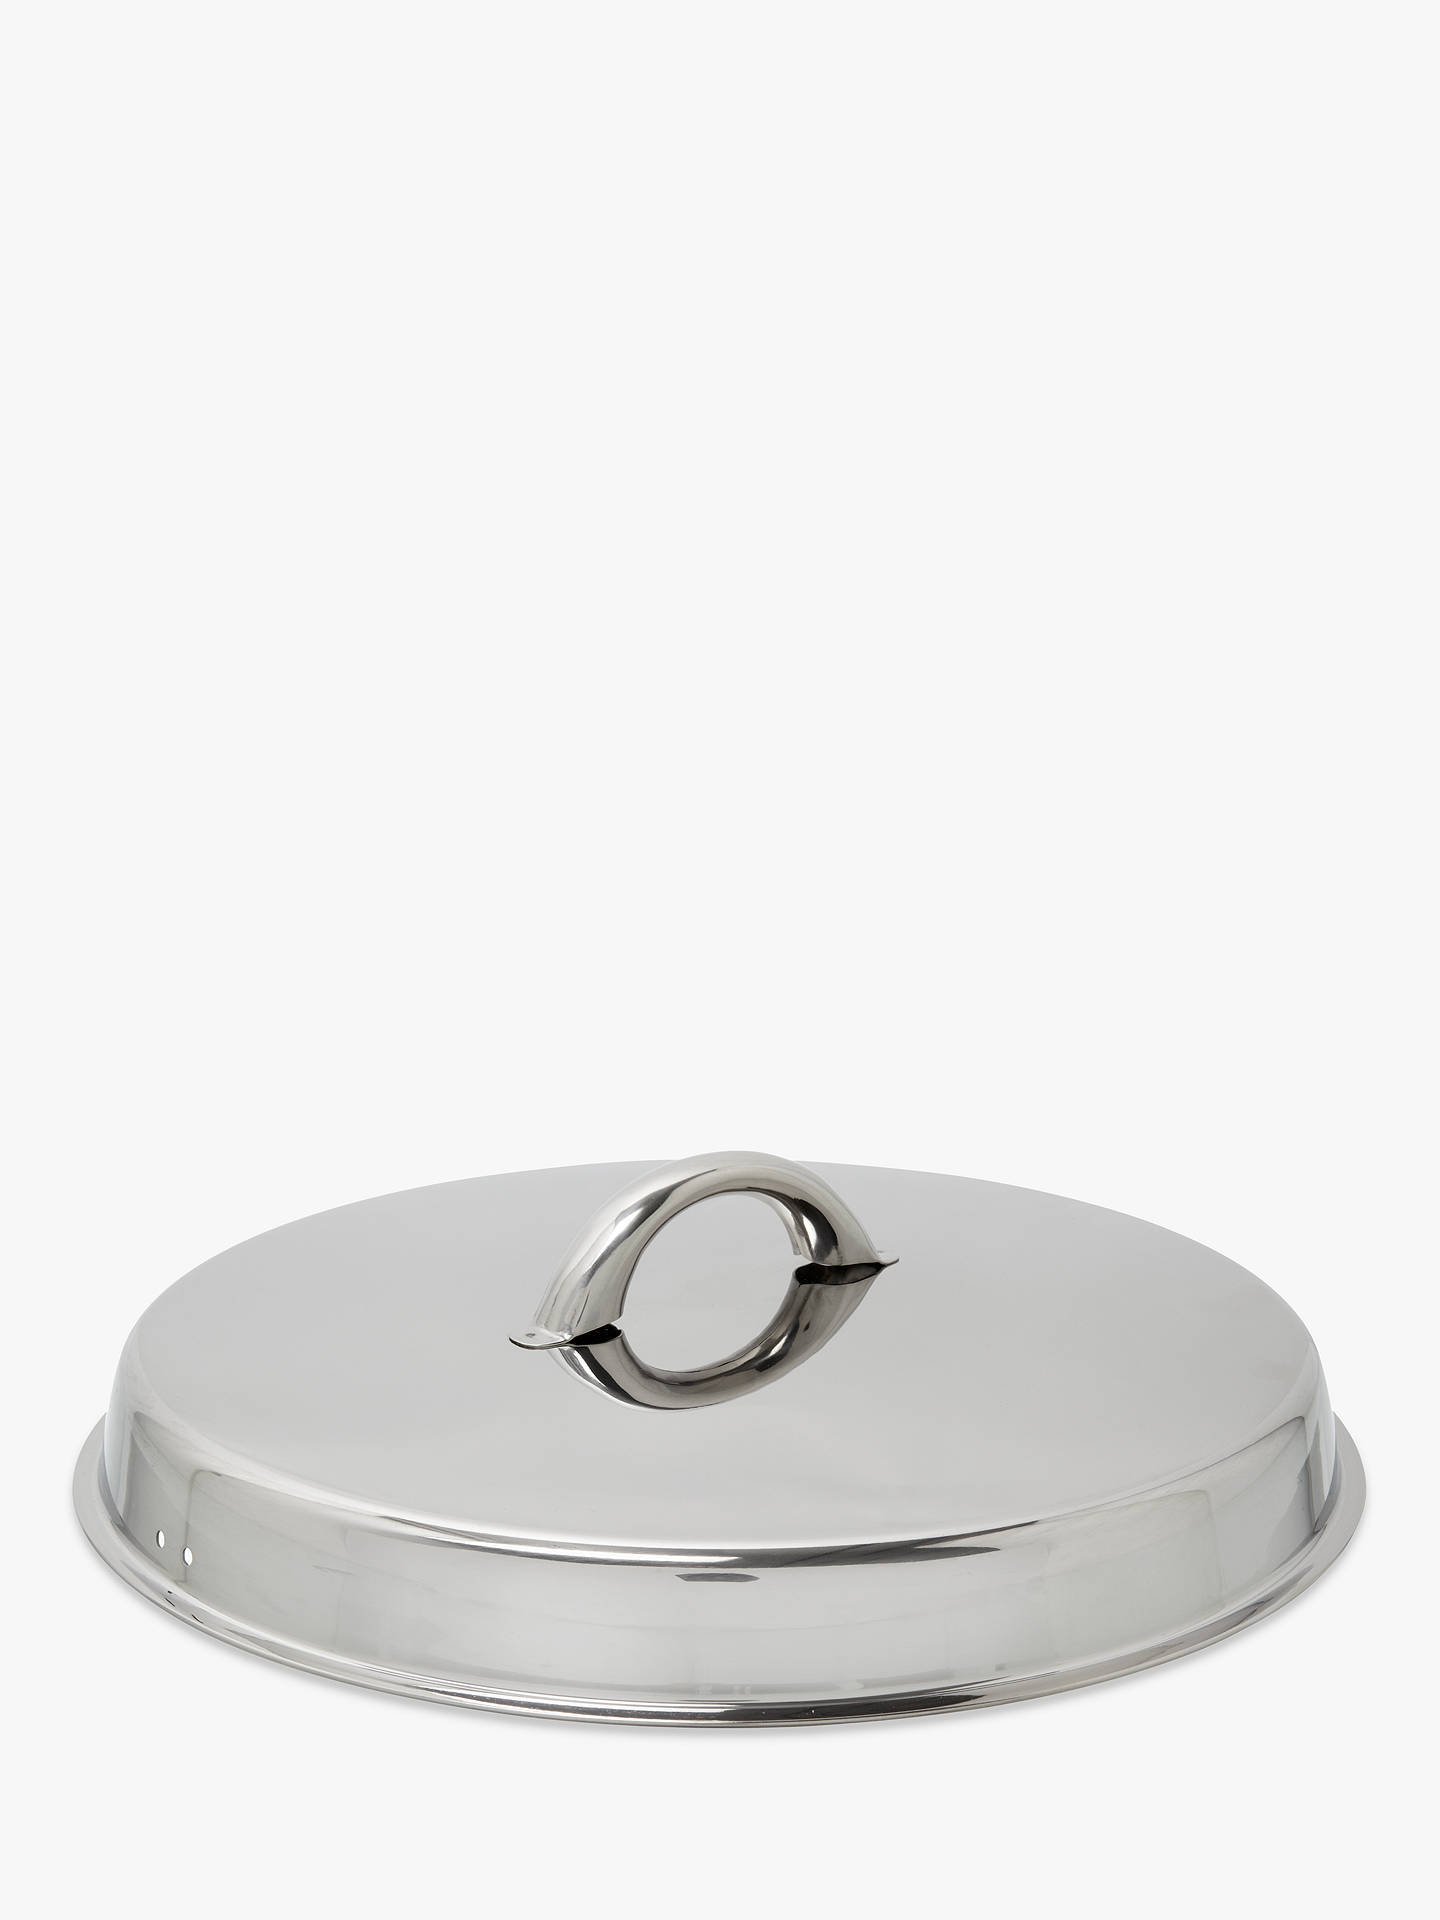 Buy John Lewis & Partners Classic Stainless Steel Stockpot, 6.5L, 24cm Online at johnlewis.com